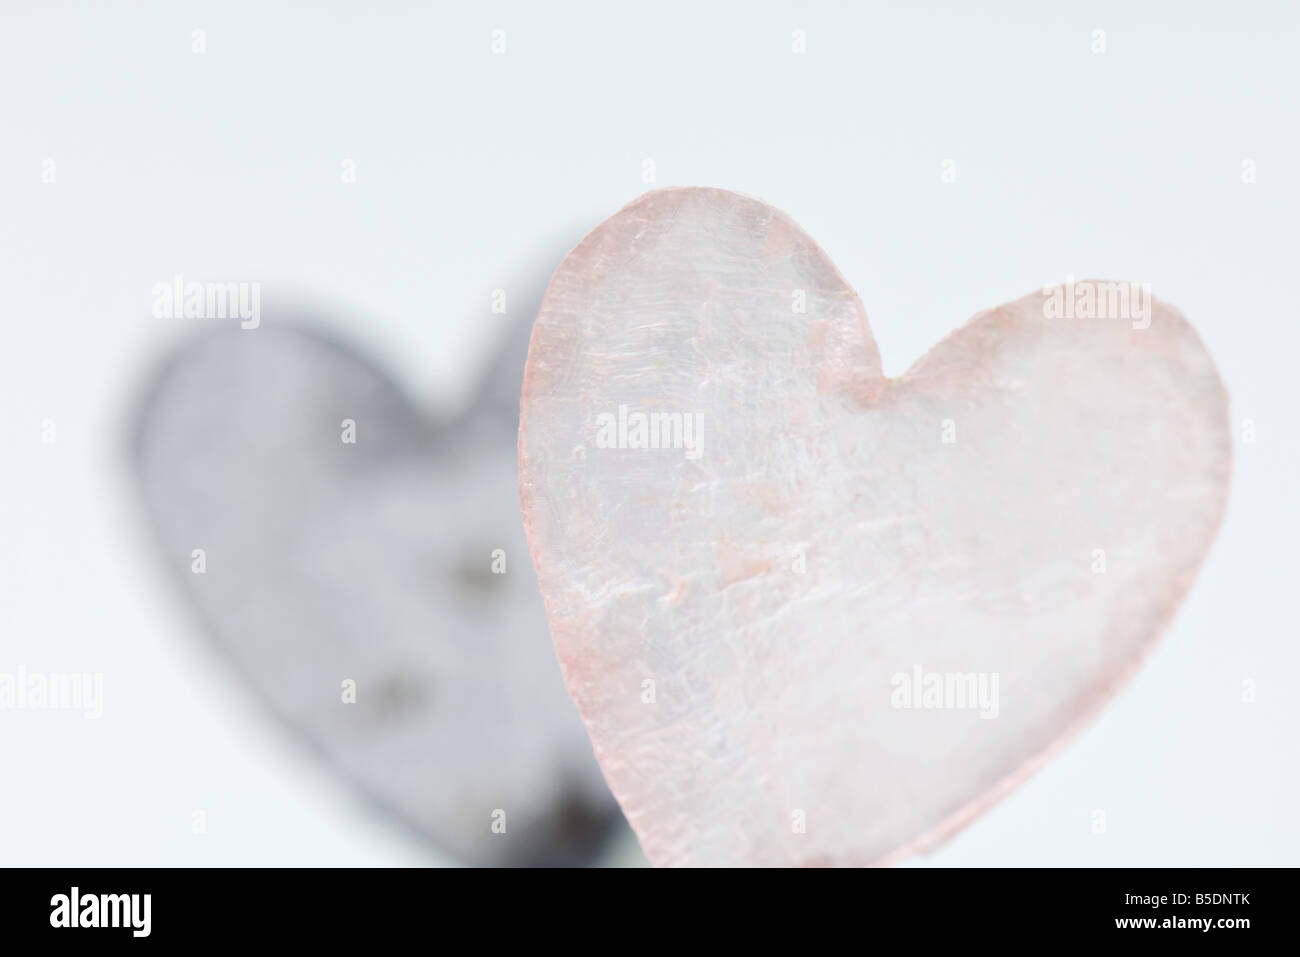 Heart-shaped piece of glass - Stock Image